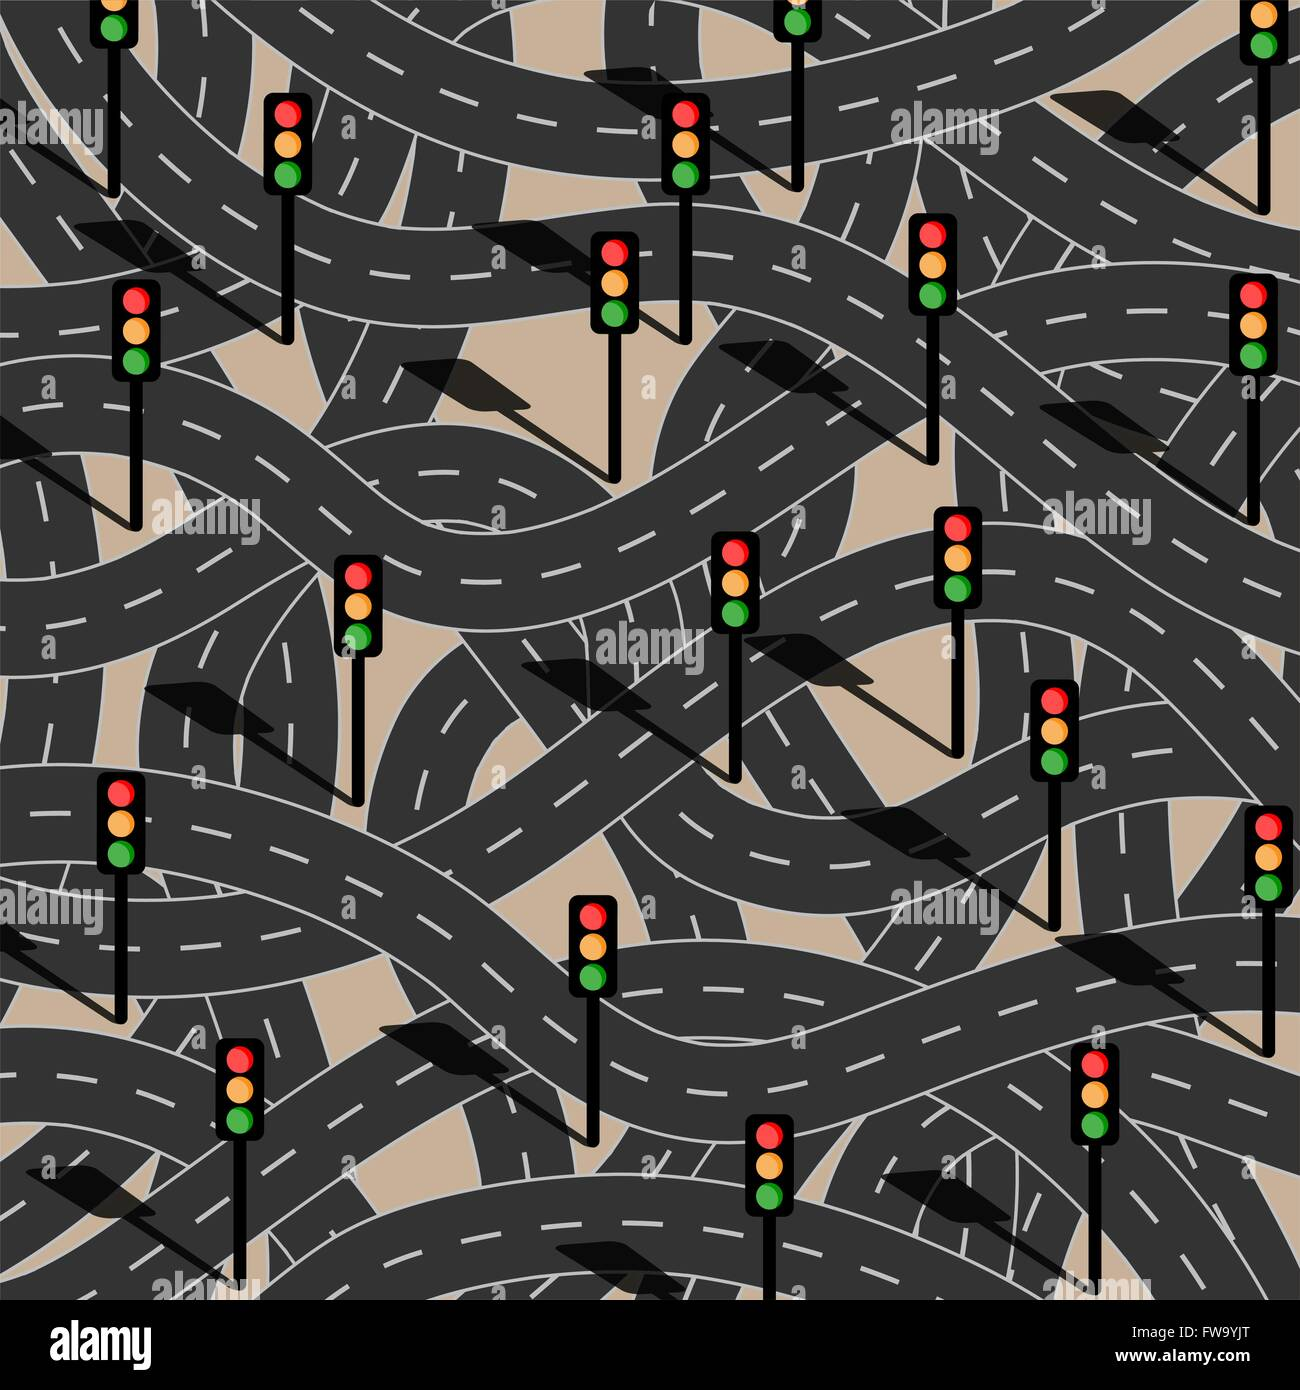 Route to chaos. Filled with traffic lights. - Stock Vector